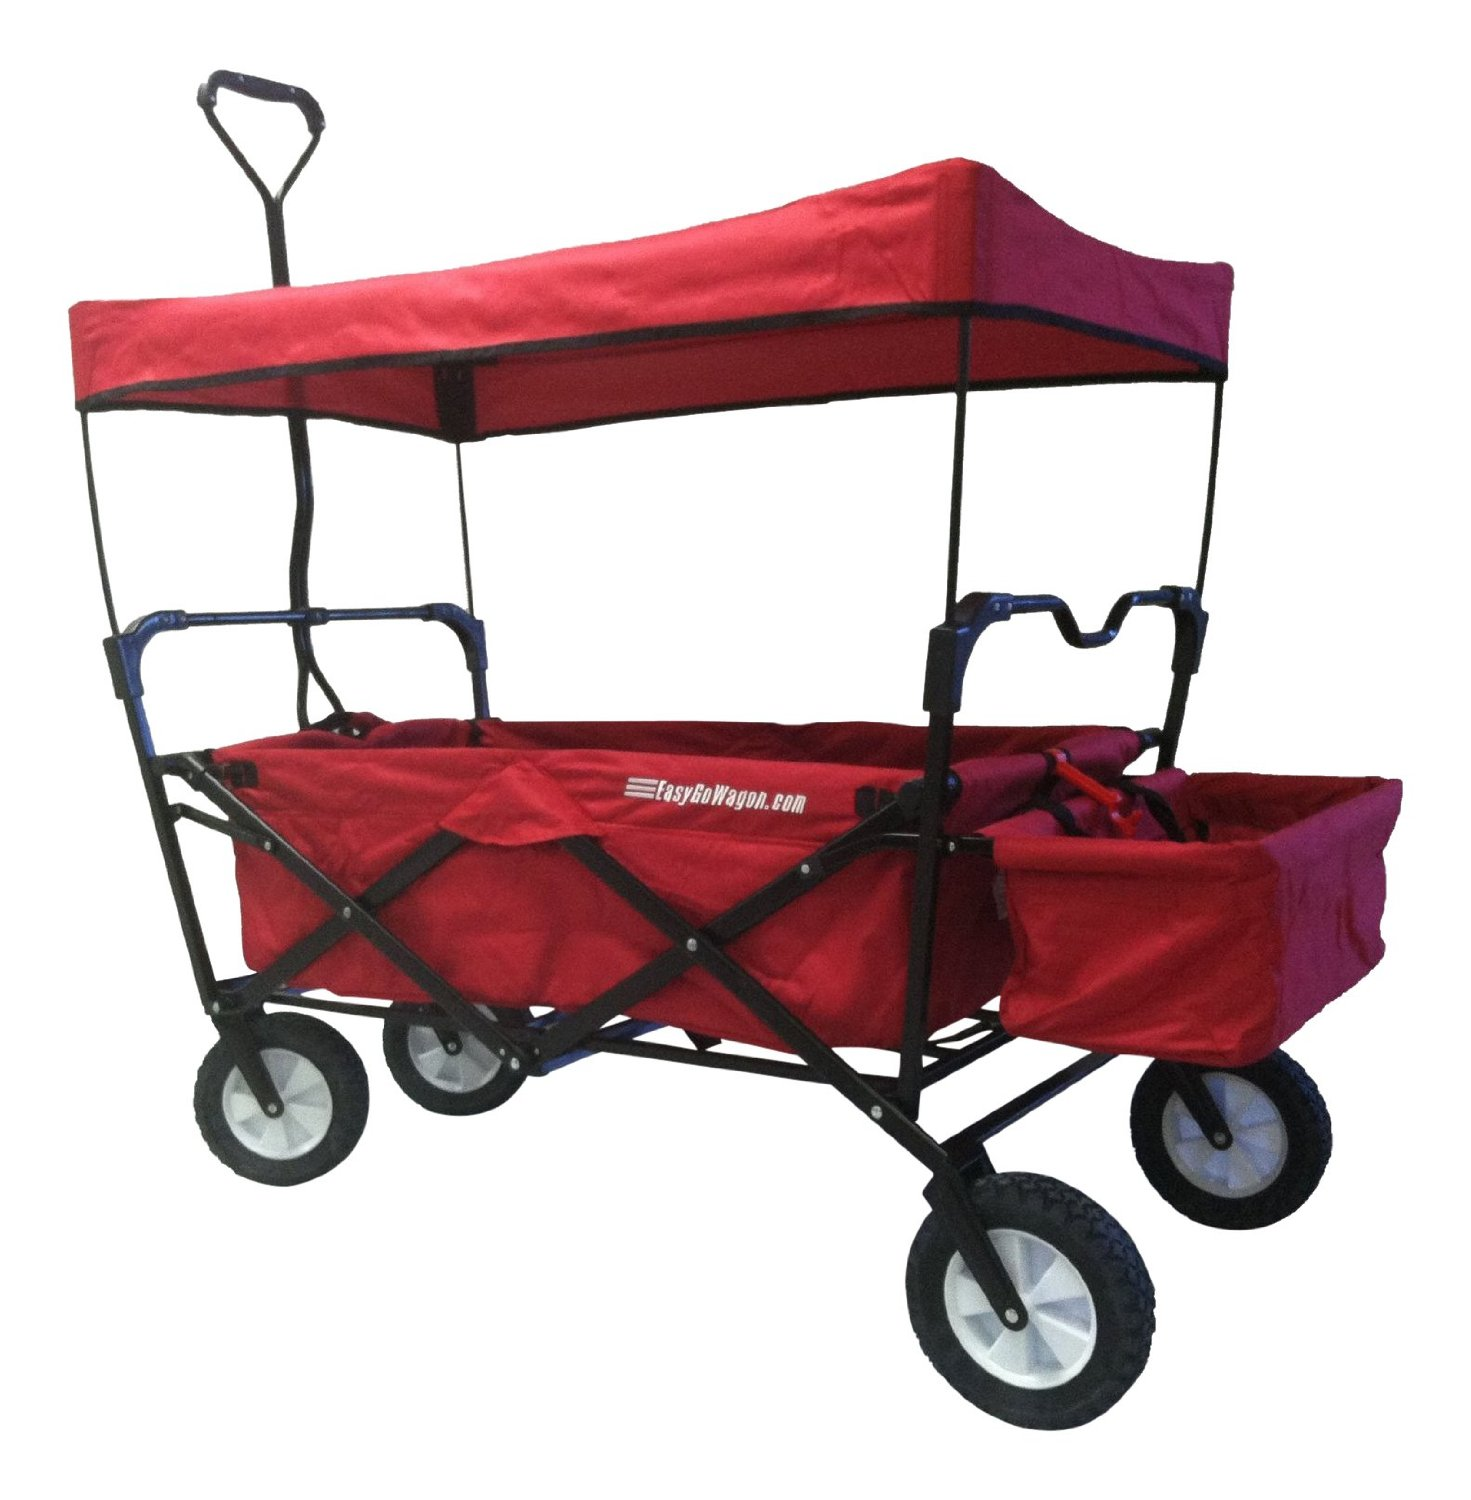 top 10 folding wagons best reviews for your choice 2019. Black Bedroom Furniture Sets. Home Design Ideas